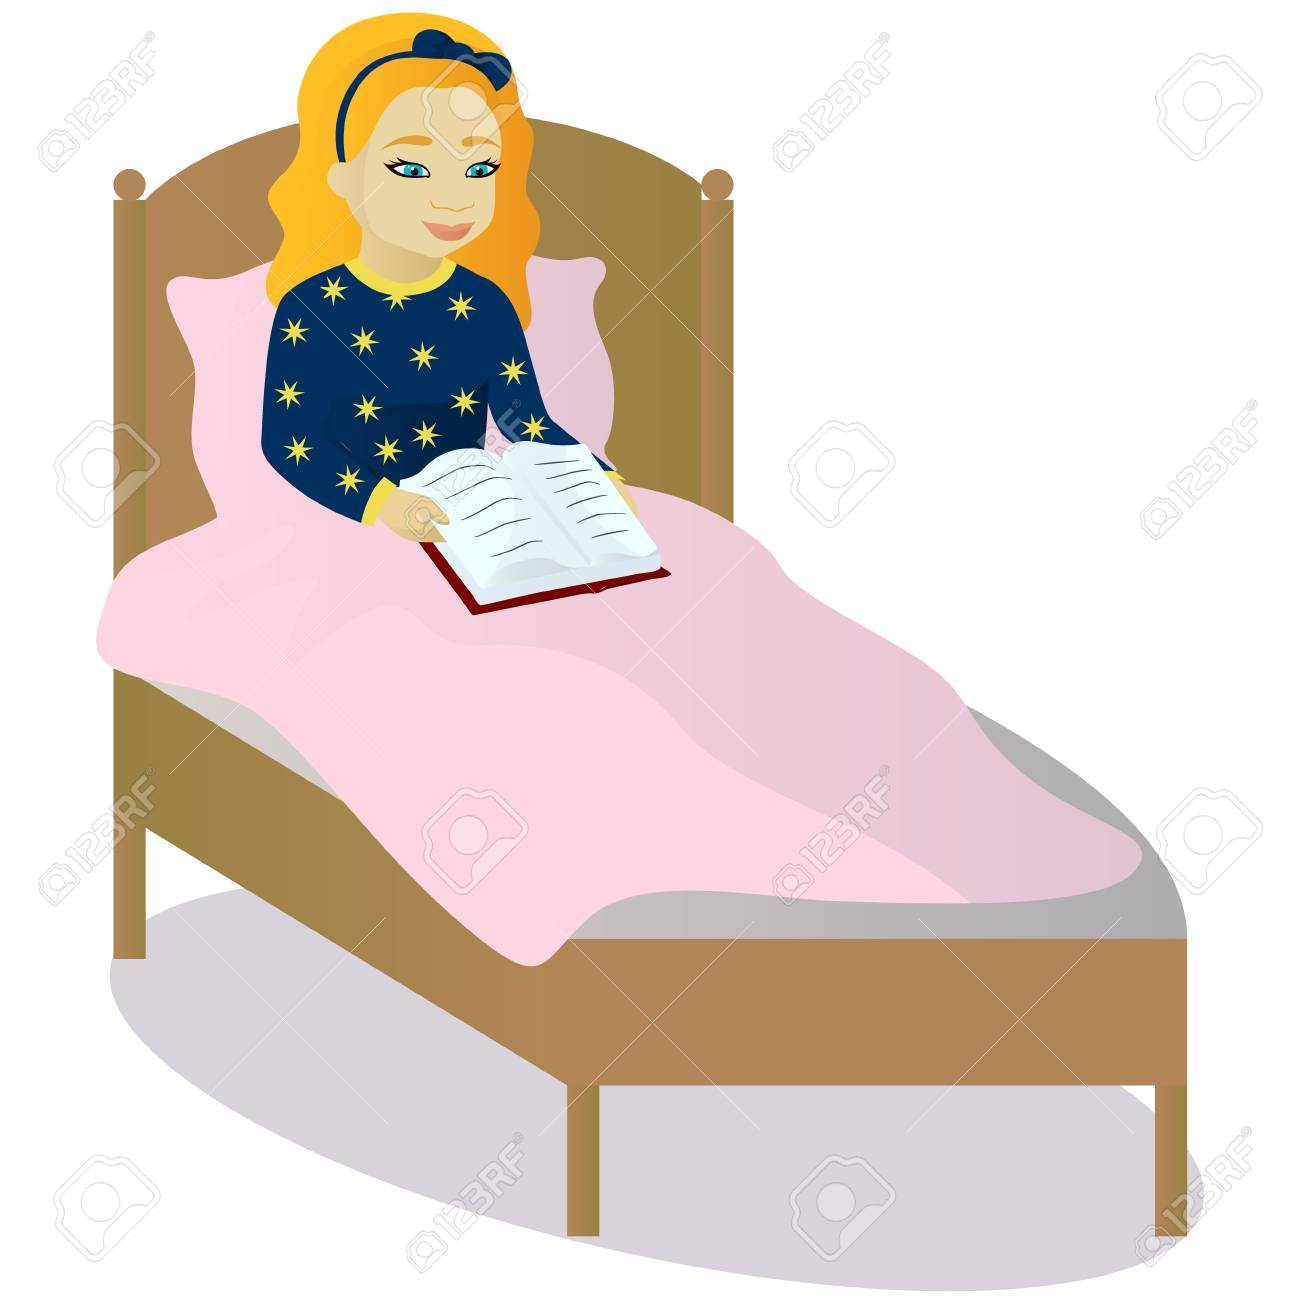 Image result for reading in bed clipart